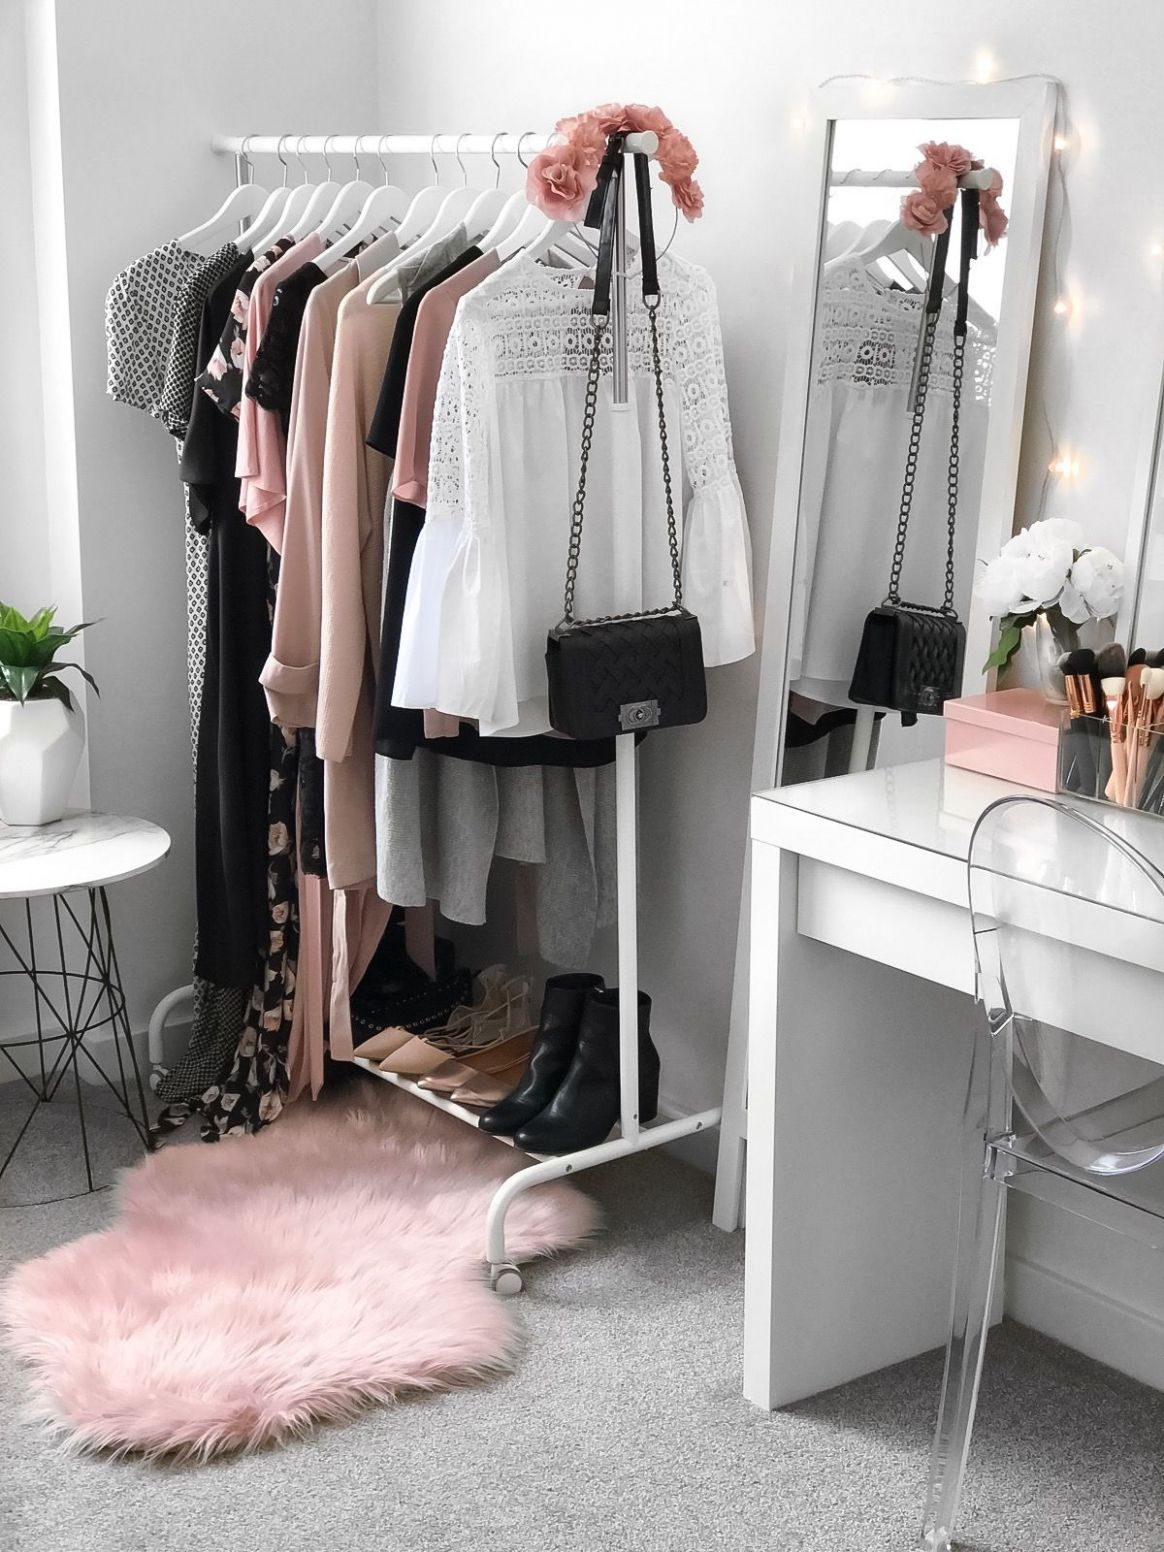 Wardrobe + beauty room. Makeup vanity from Ikea (Malm dressing ..